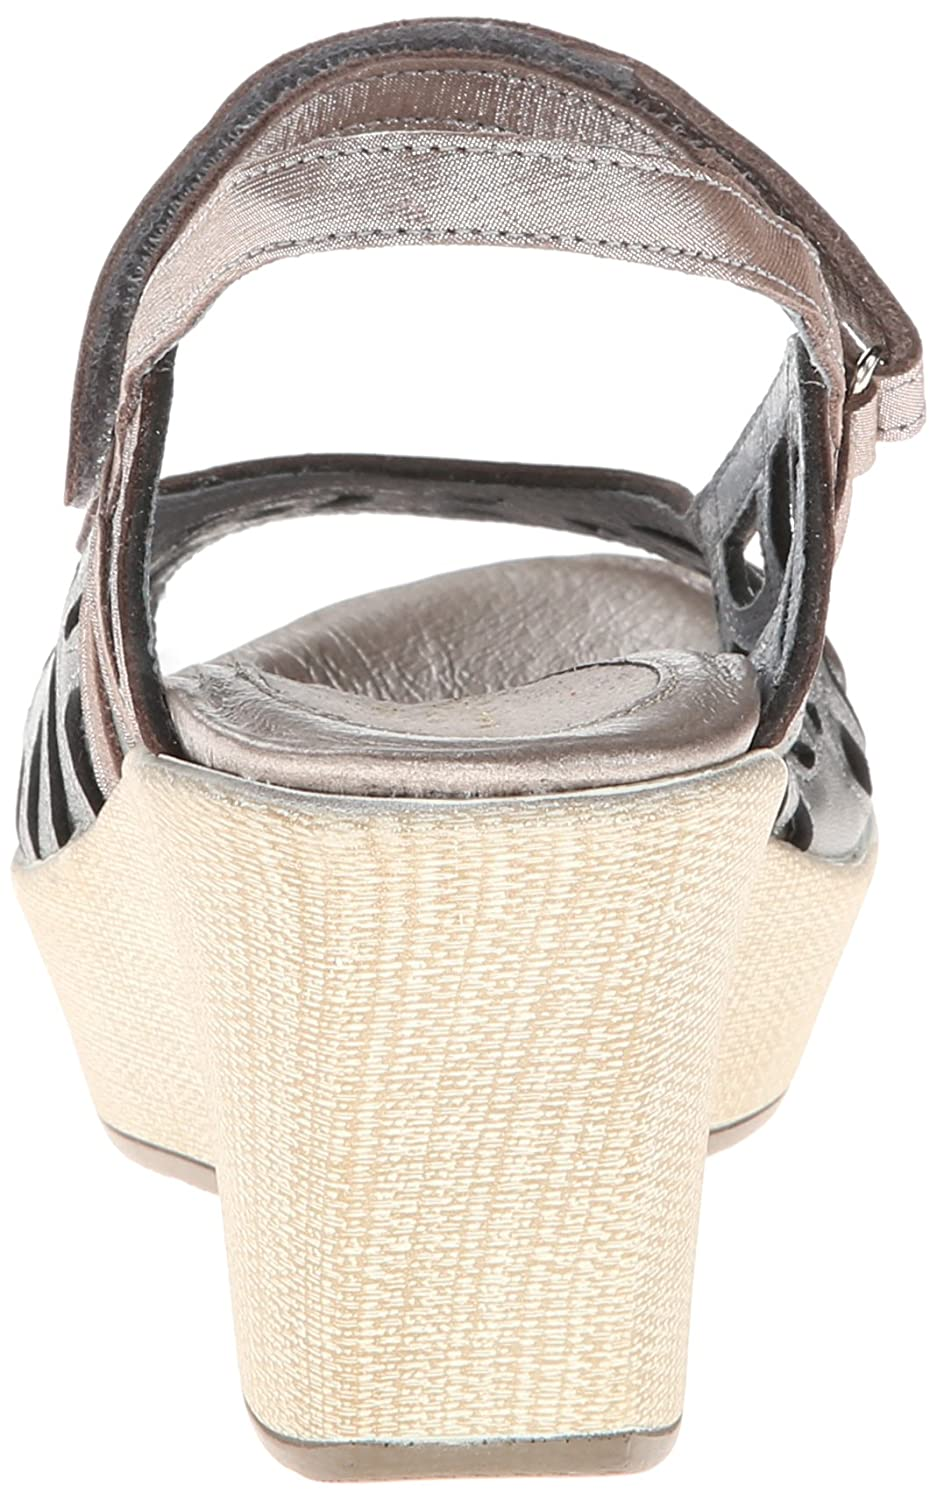 NAOT Women's Deluxe Wedge Sandal B00DS6VKHK 39 EU/7.5 - 8 M US|Sterling/Silver Threads Leather